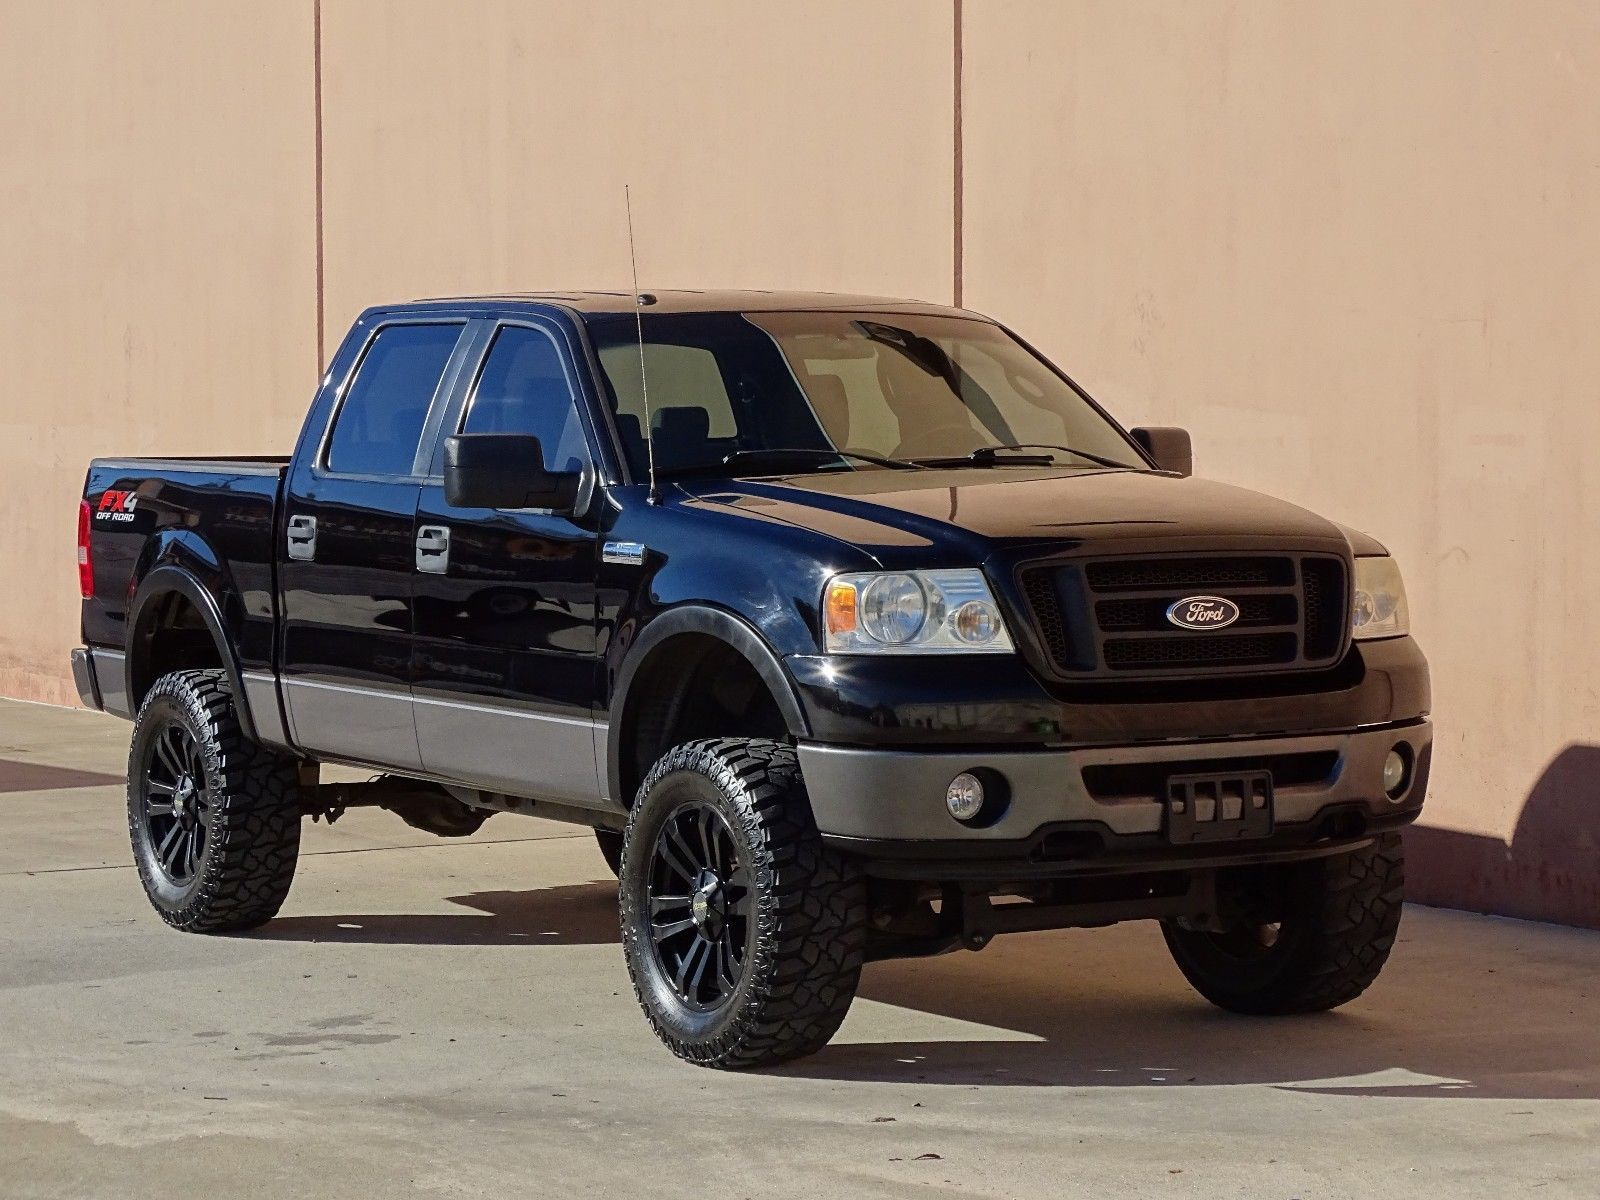 2007 Ford F150 Fx4 Crew Cab 4x4 5 4l V8 Lifted W 20 Lifted